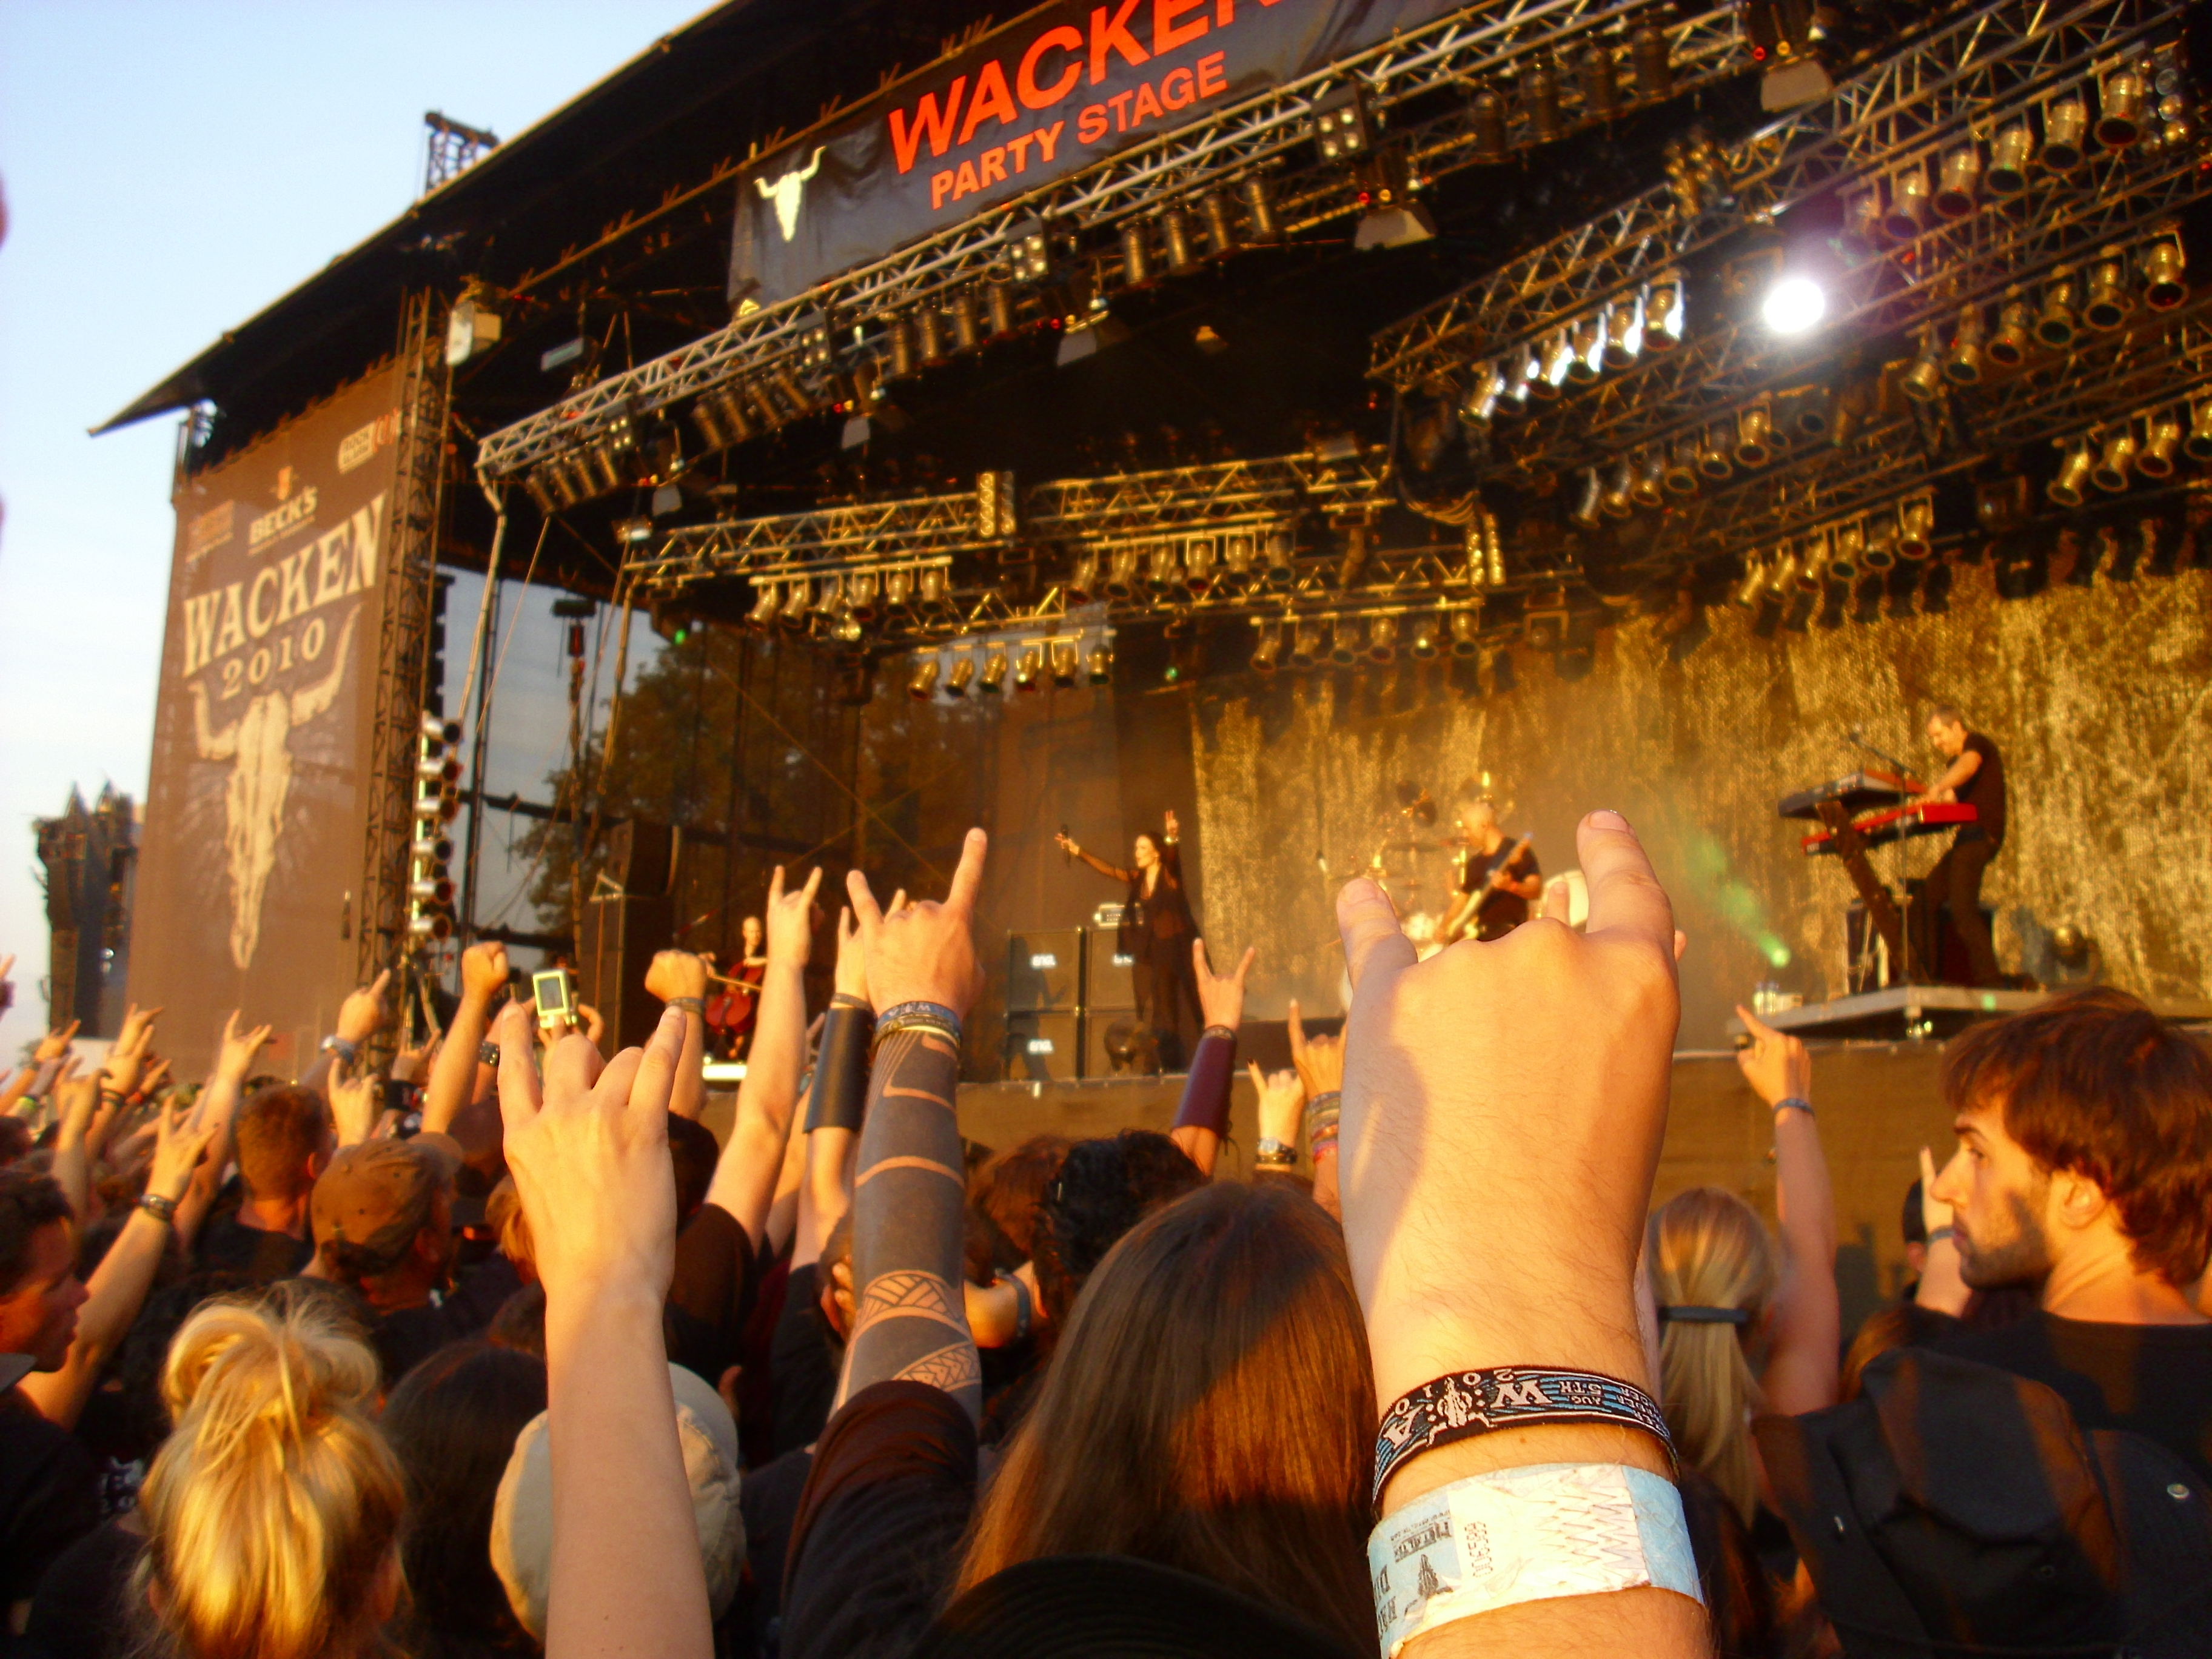 Wacken open air 2010 by ceciliawemgard